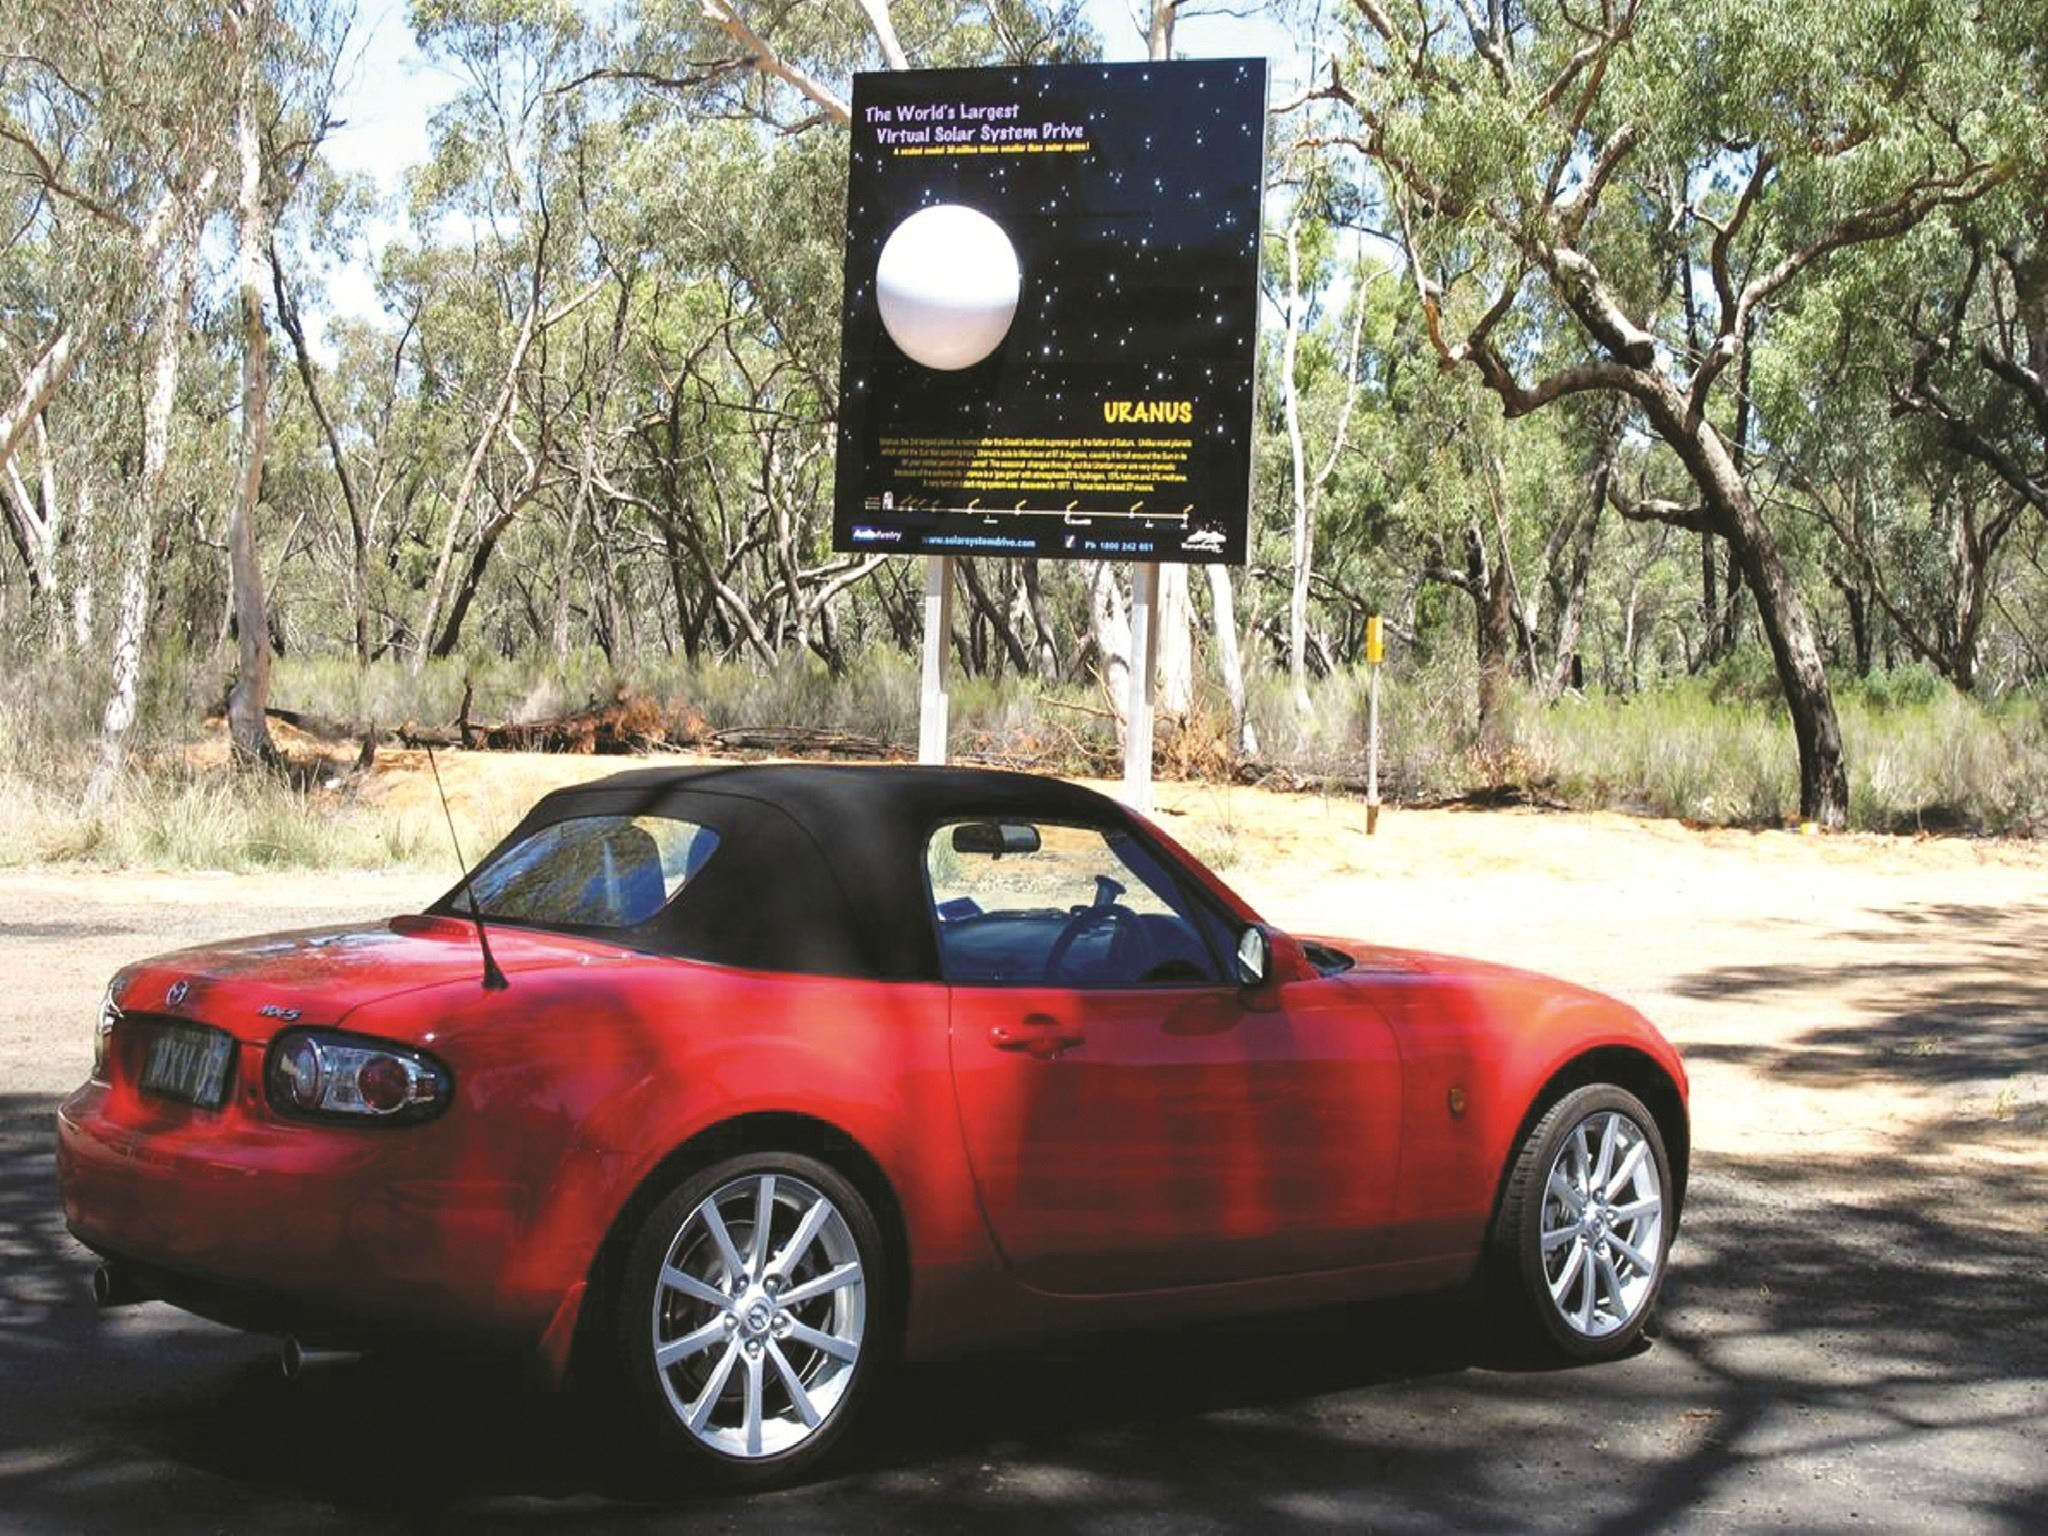 Worlds Largest Virtual Solar System Drive - QLD Tourism